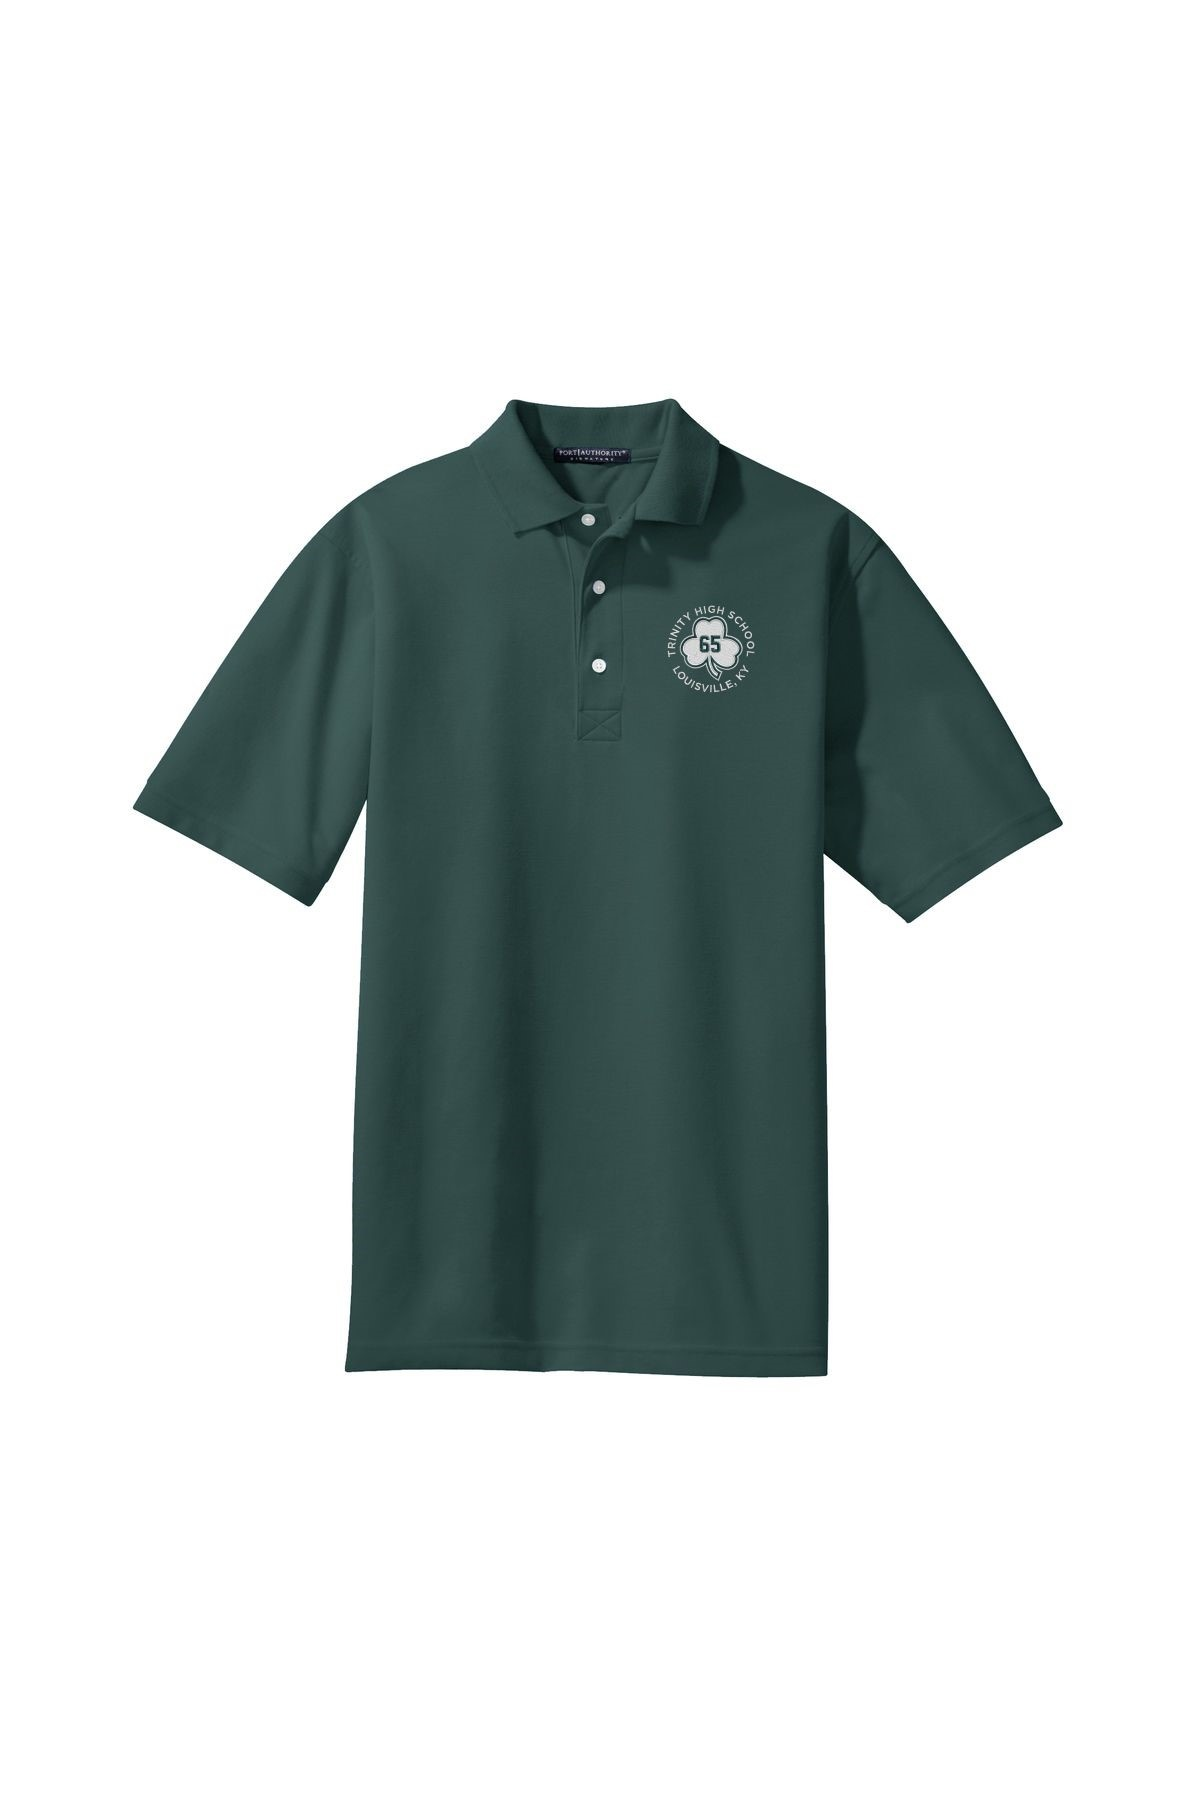 Port Authority Class of 1965 Polo Blend Shirt